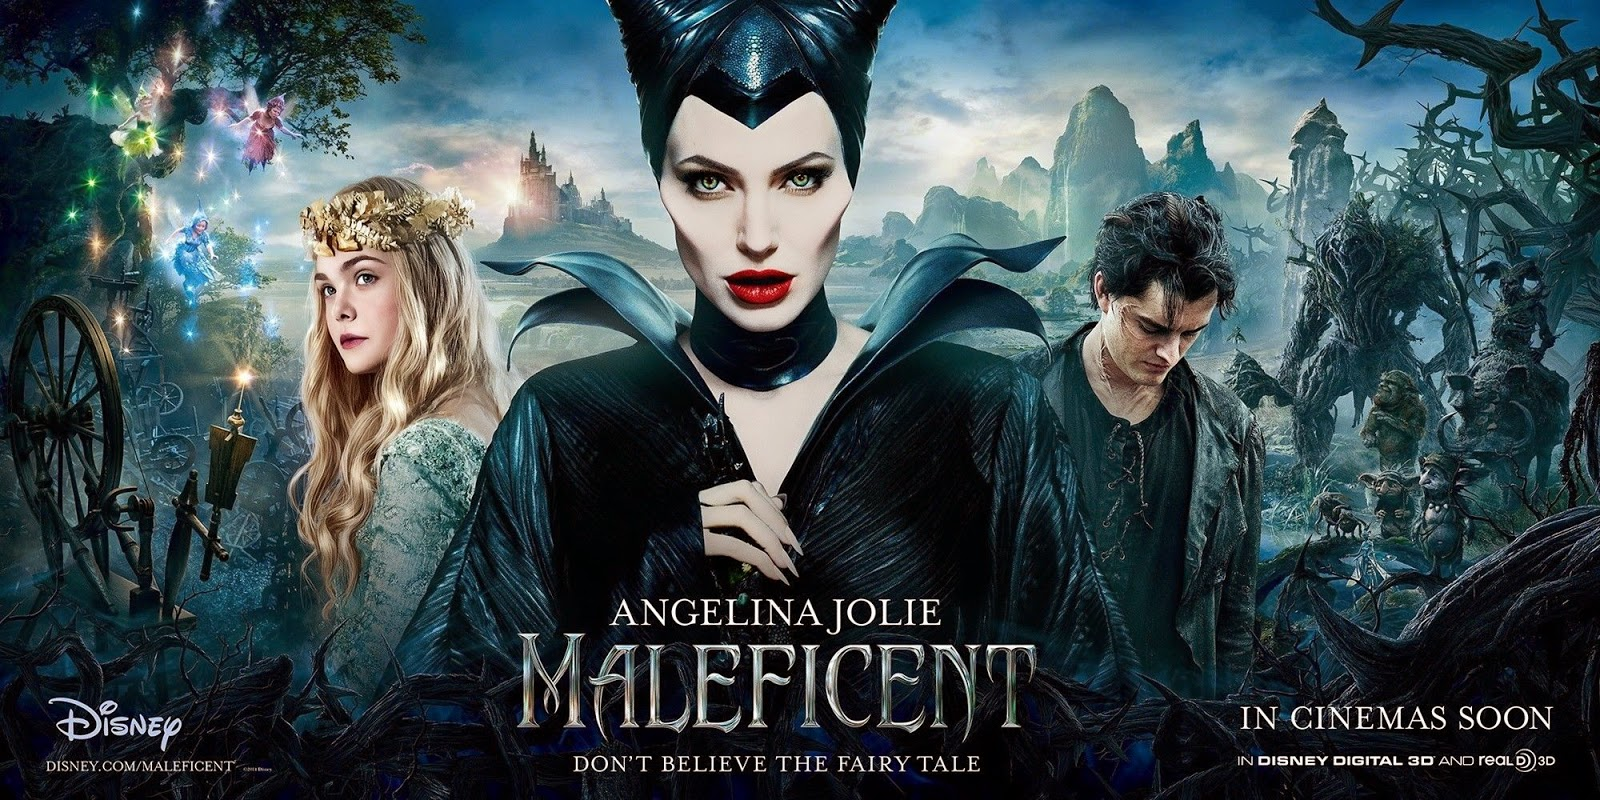 Sleeping Beauty, Maleficent gif, Maleficent Movies, Angelina Jolie, Disney Villain, elle fanning, aurora, black evil